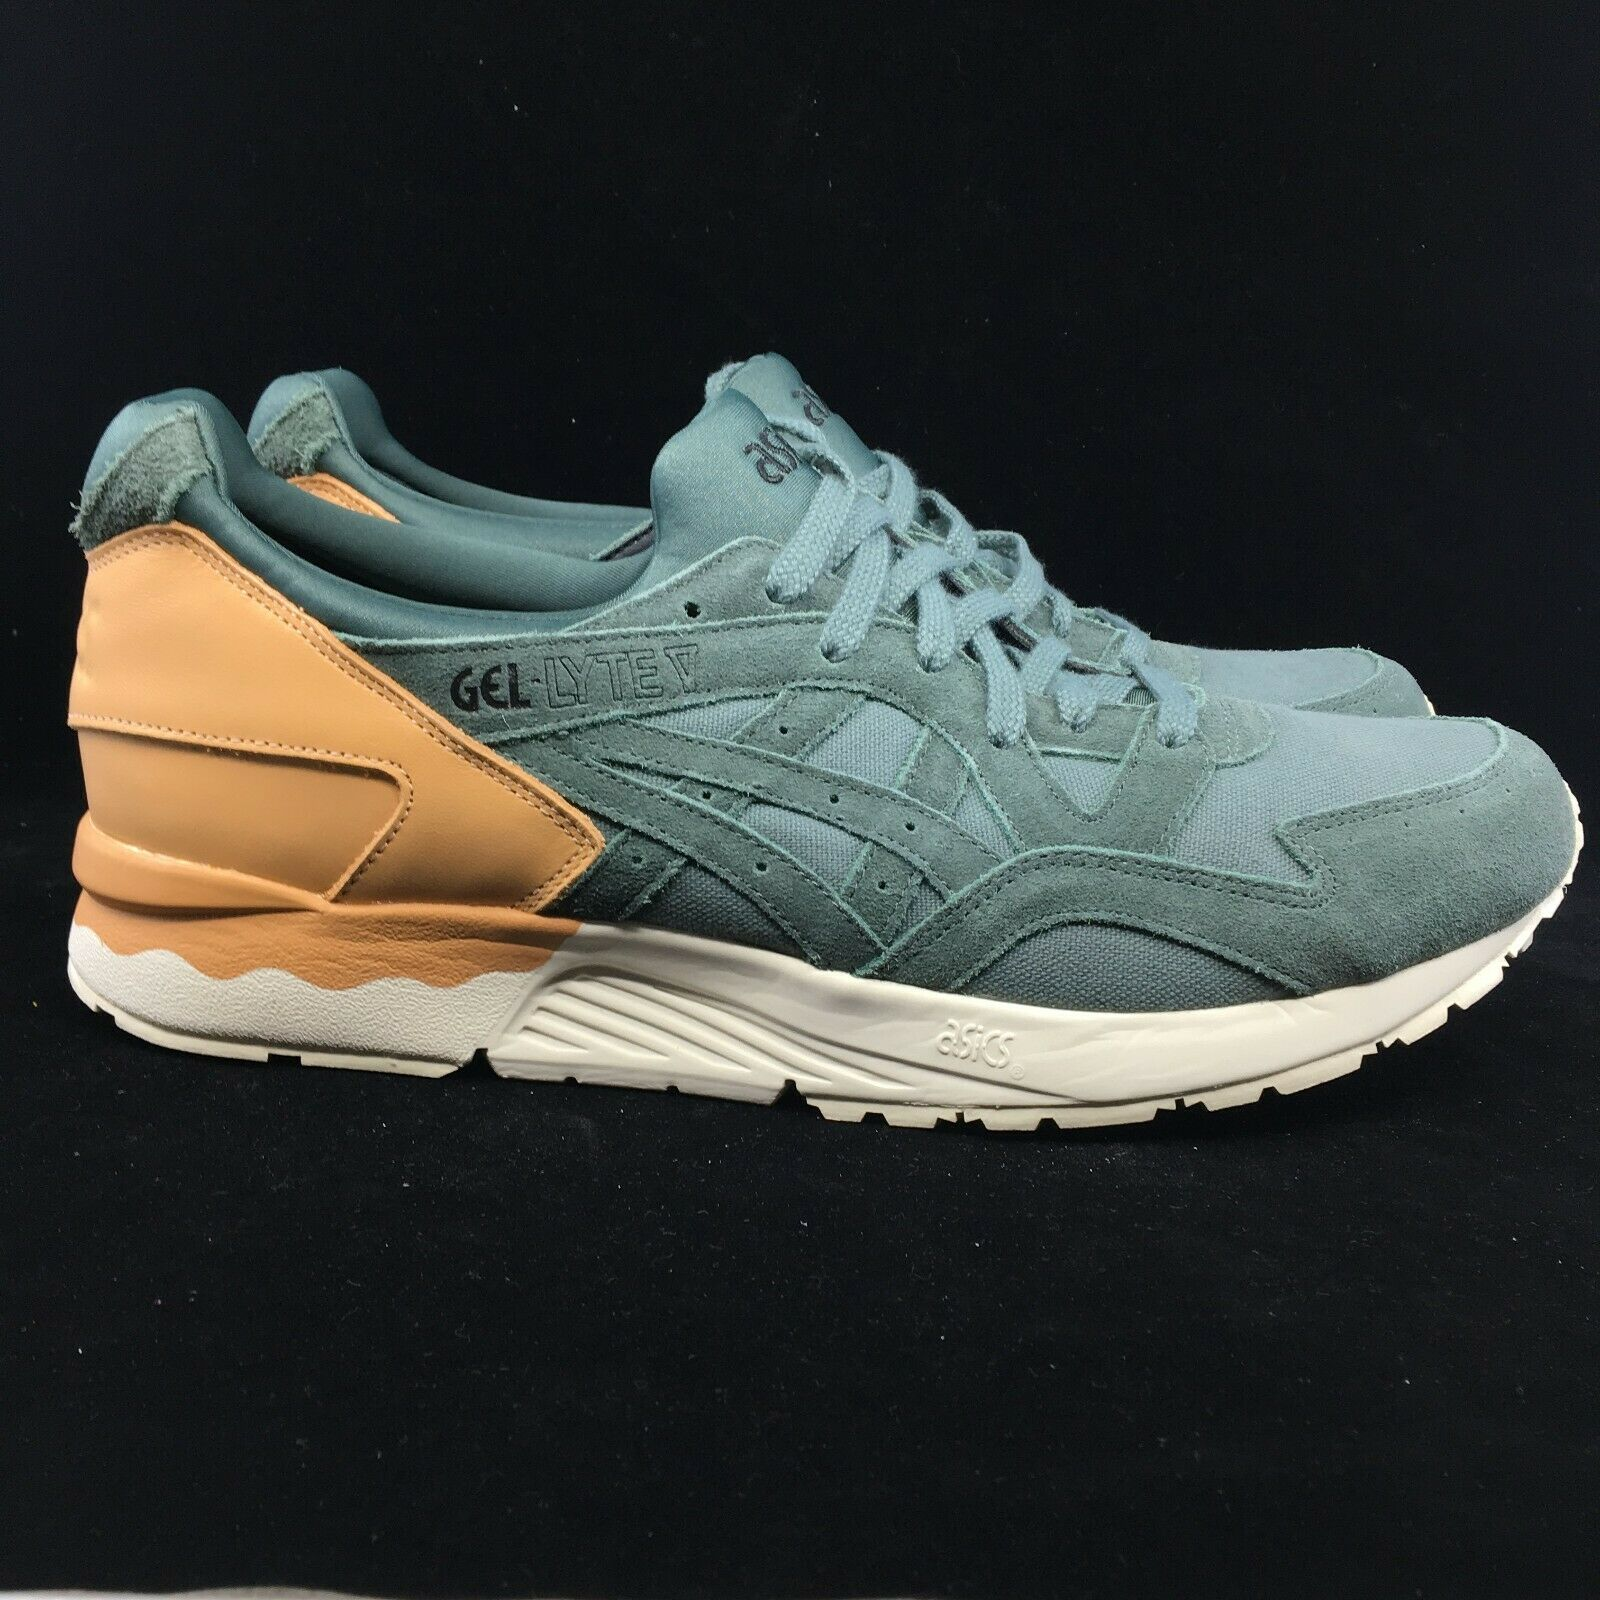 Asics - Gel-Lyte V  Reef Waters / Birch Sneaker HL7K0-4002